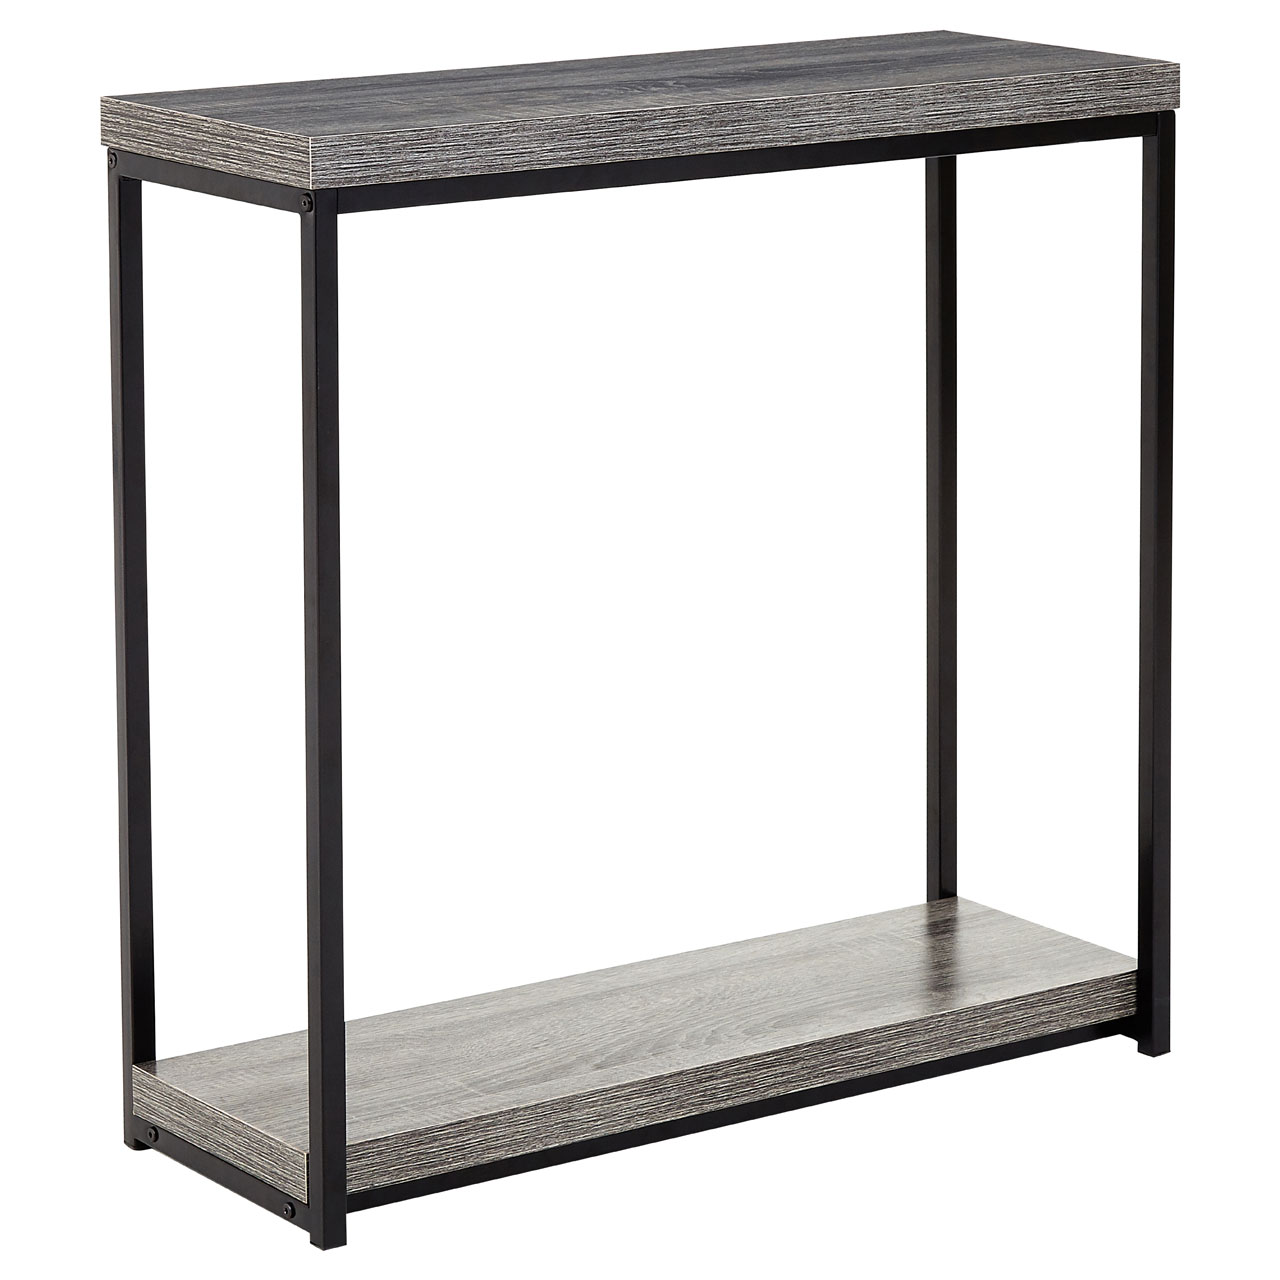 Ampm Console Metal Sofa Table Ohiowoodlands Sofa Table Base Solid Steel